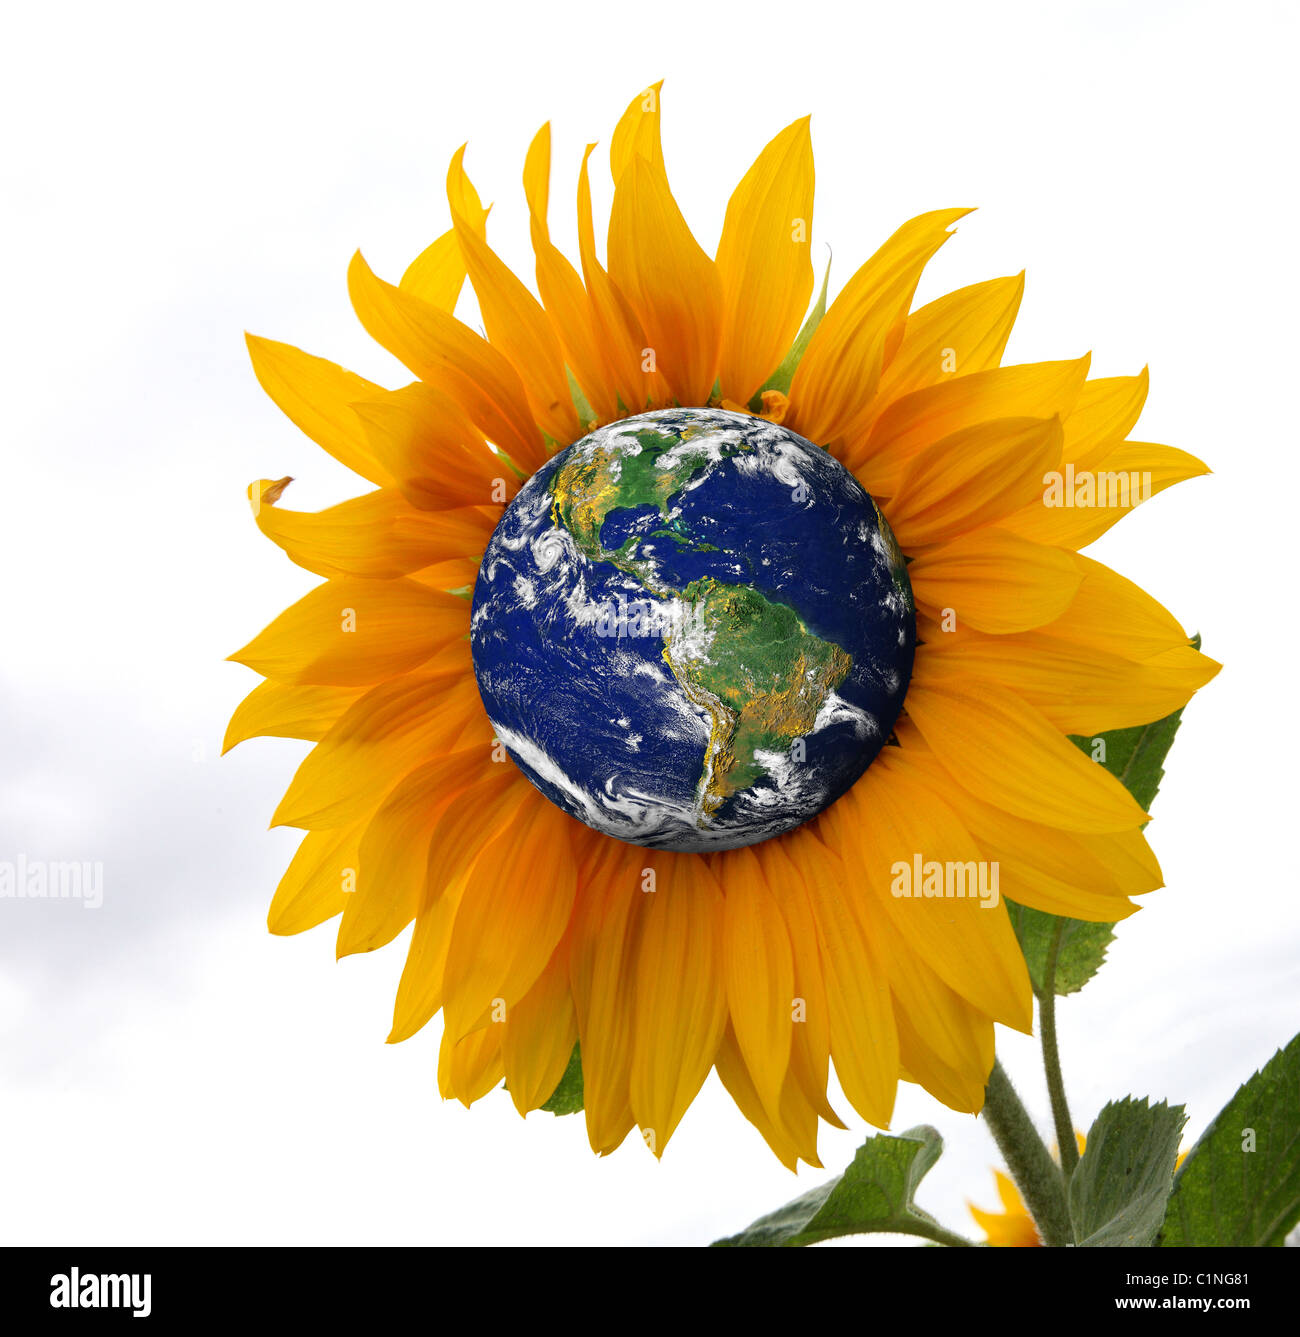 Earth as a sunflower, representing the planet as a living organism. - Stock Image